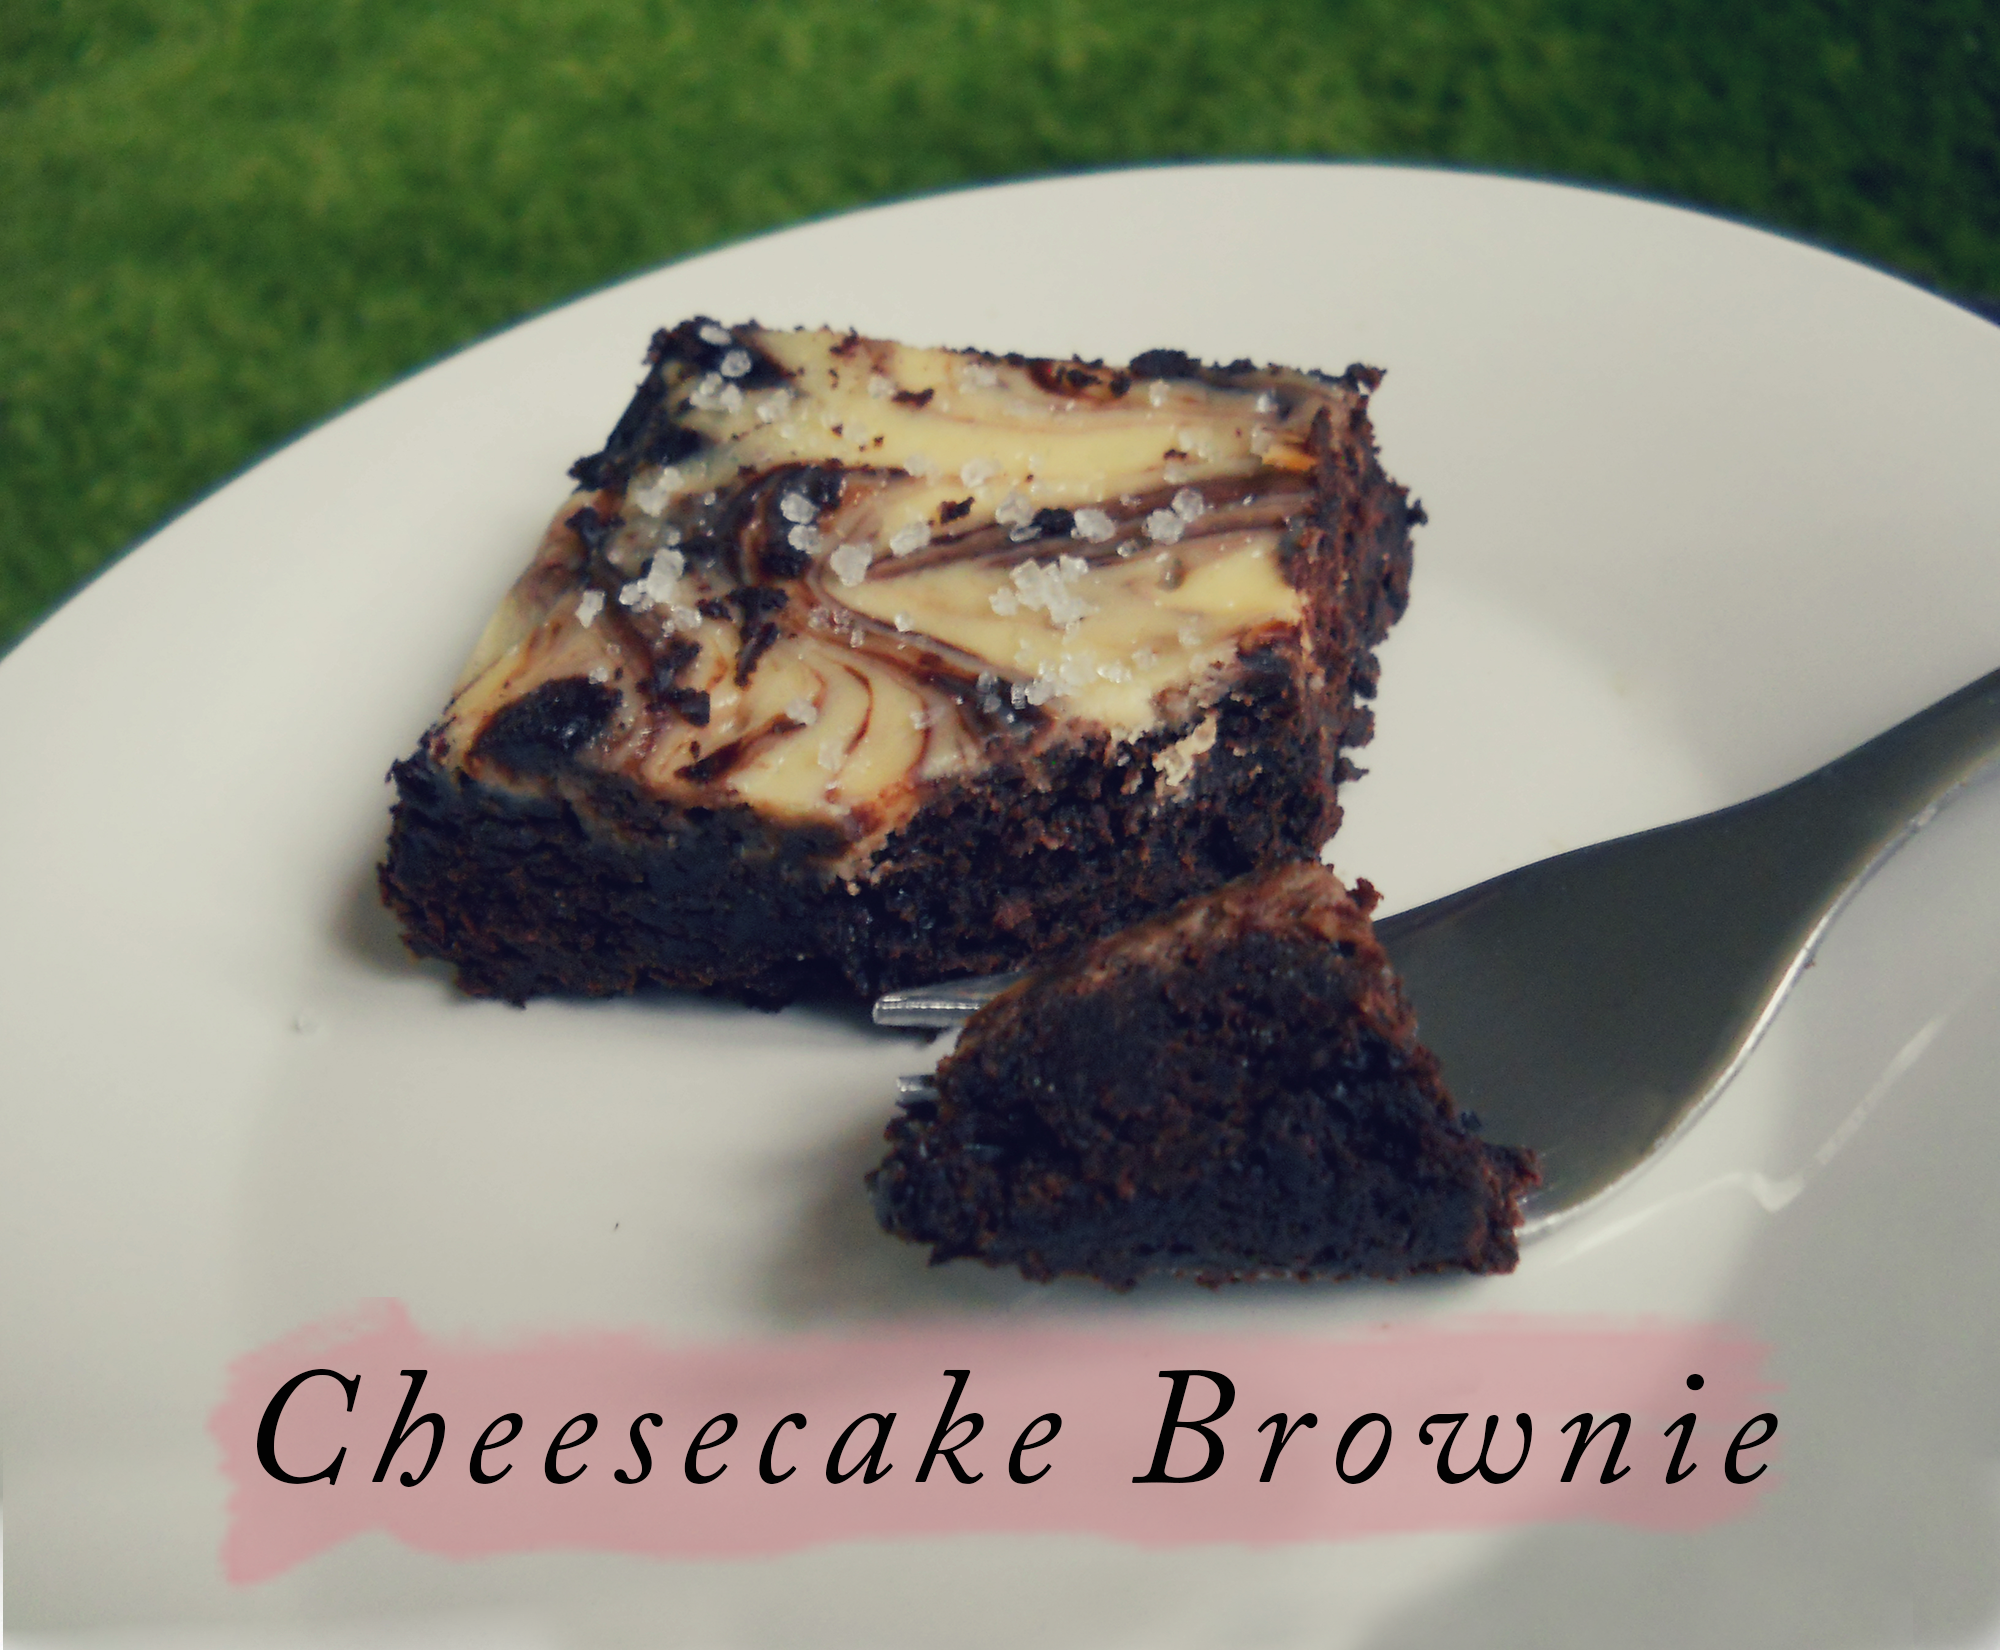 6c329a8433d4 Cheesecake Brownie - lust for lifestyle